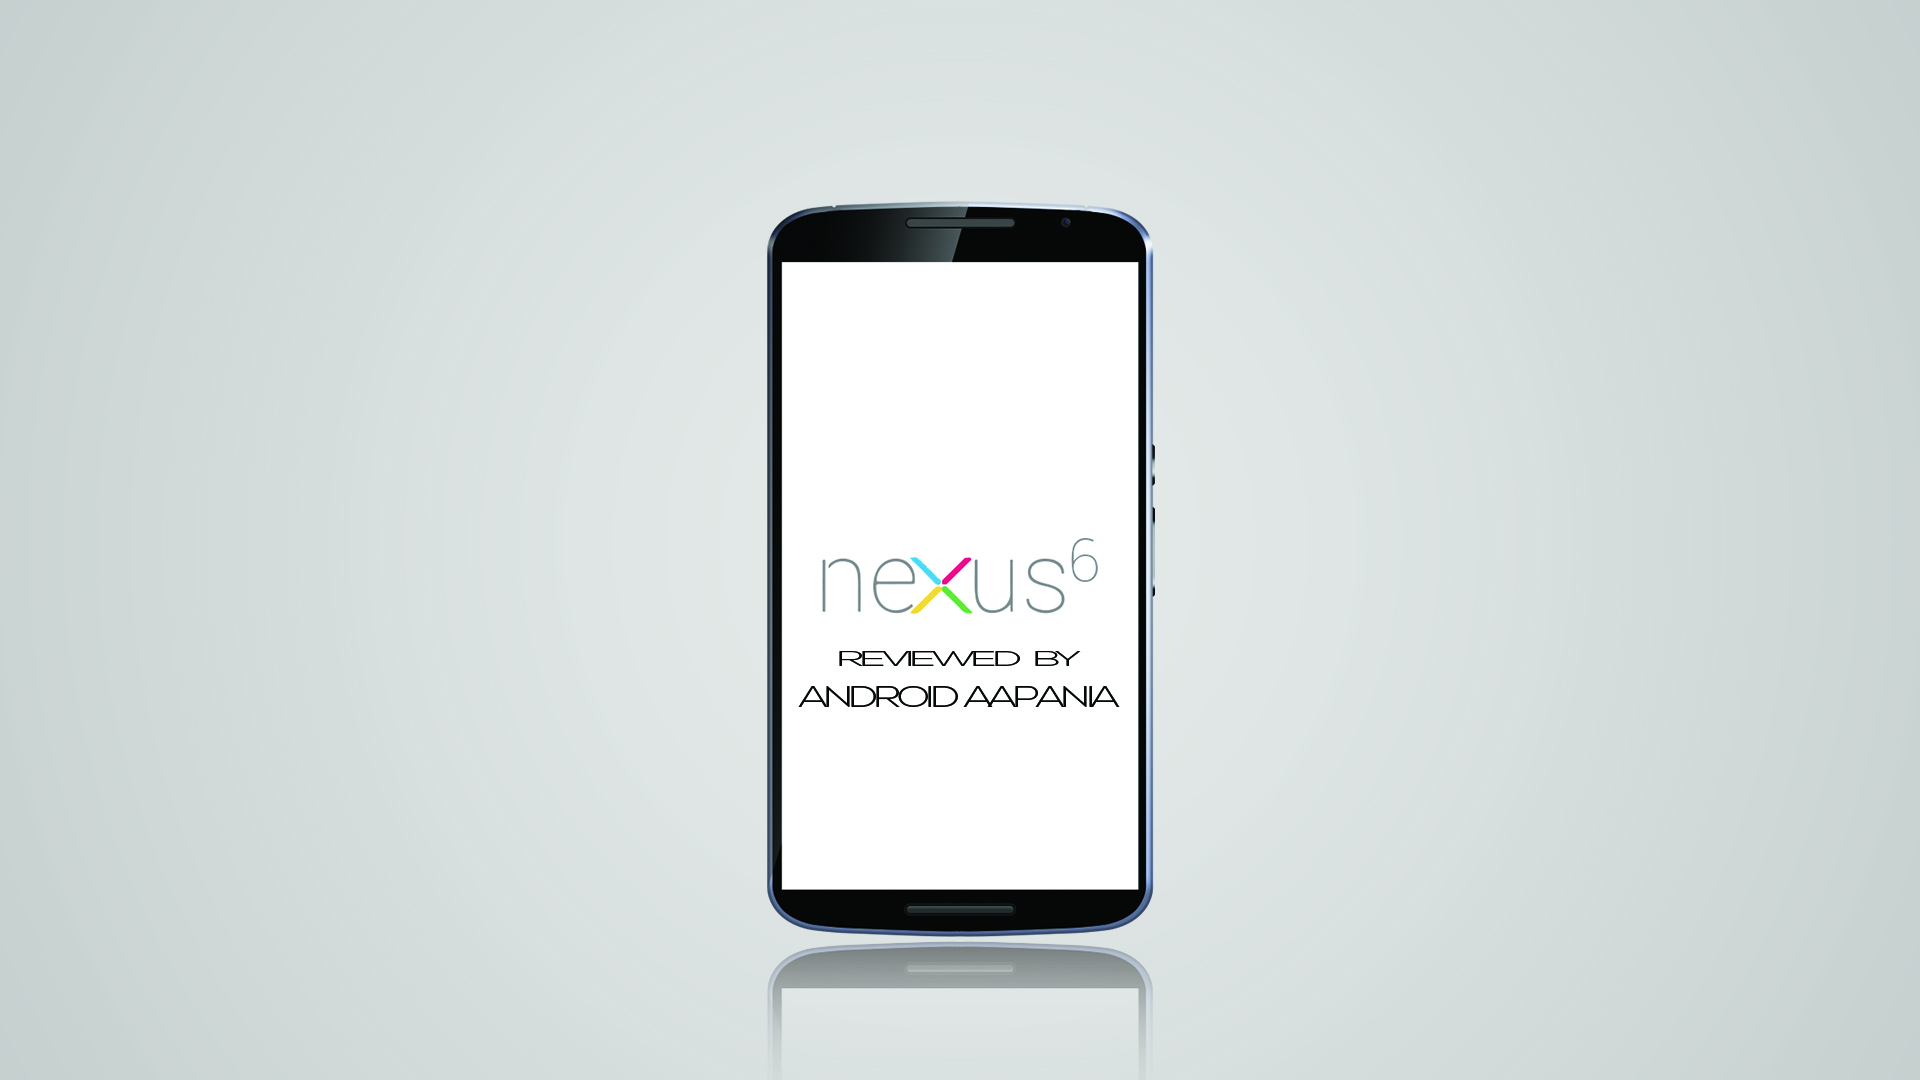 Google Nexus 6 Smartphone Video Review by Android Appania